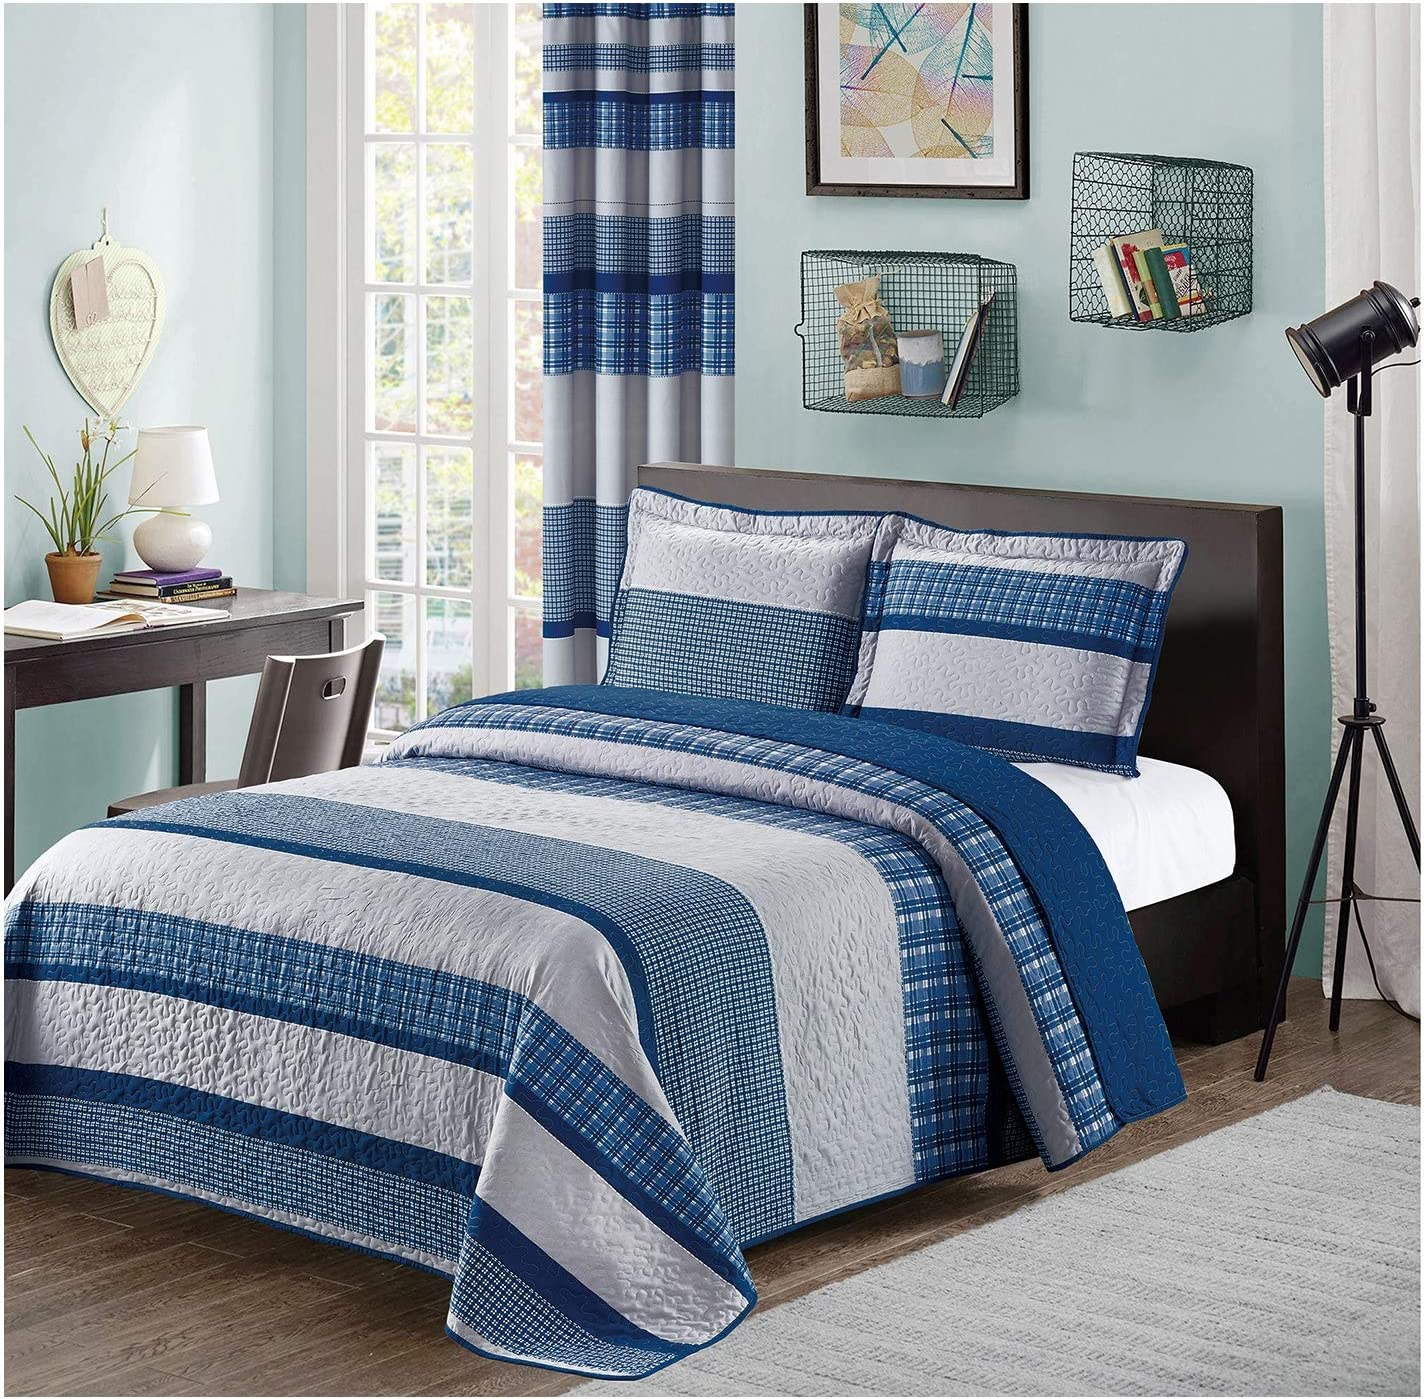 All American Collection Blue and Gray Modern Plaid 3-Piece Queen Bedspread and Pillow Sham Set